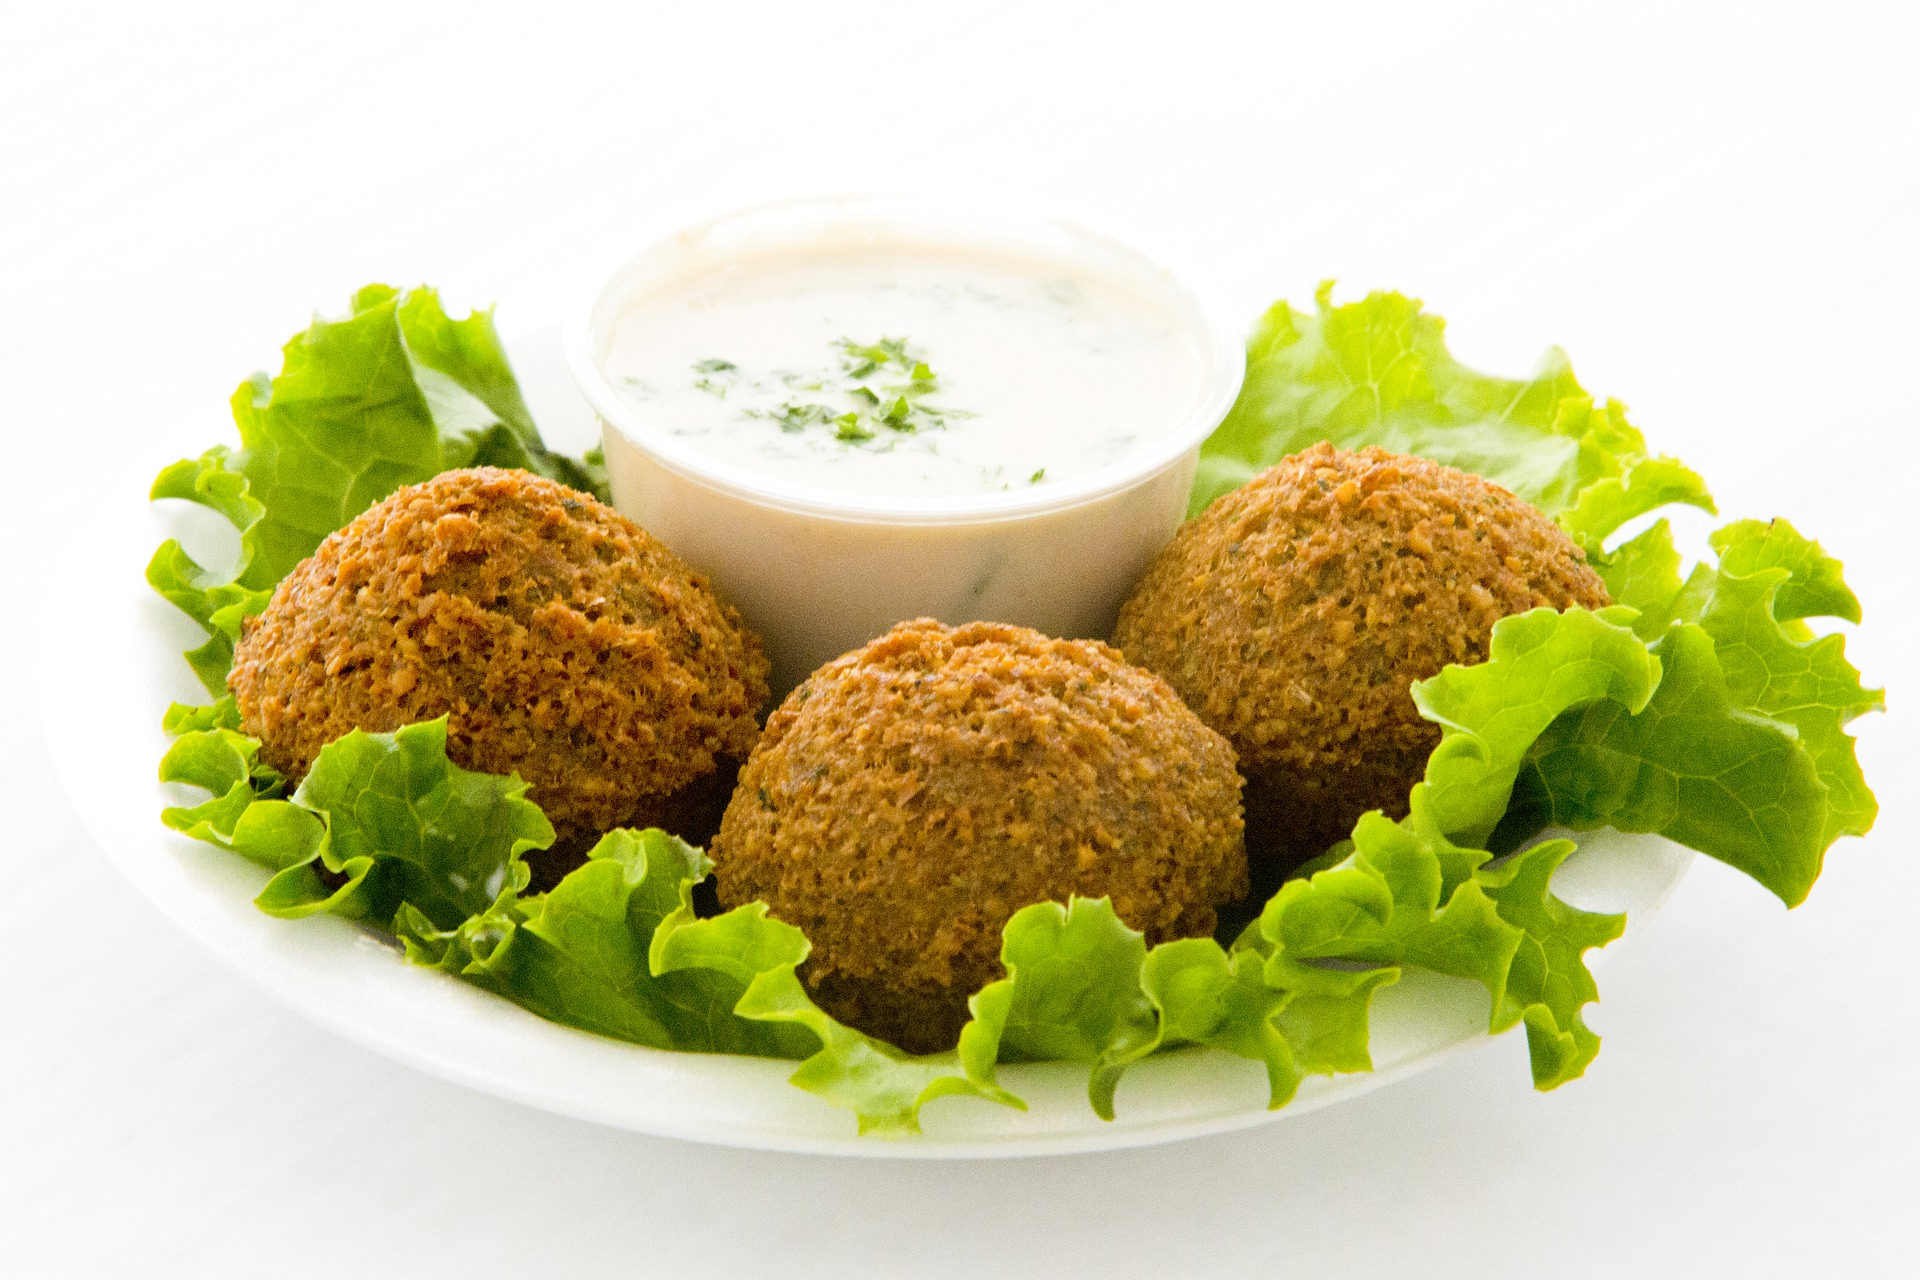 Sarah's Choice Falafel with Yogurt Sauce